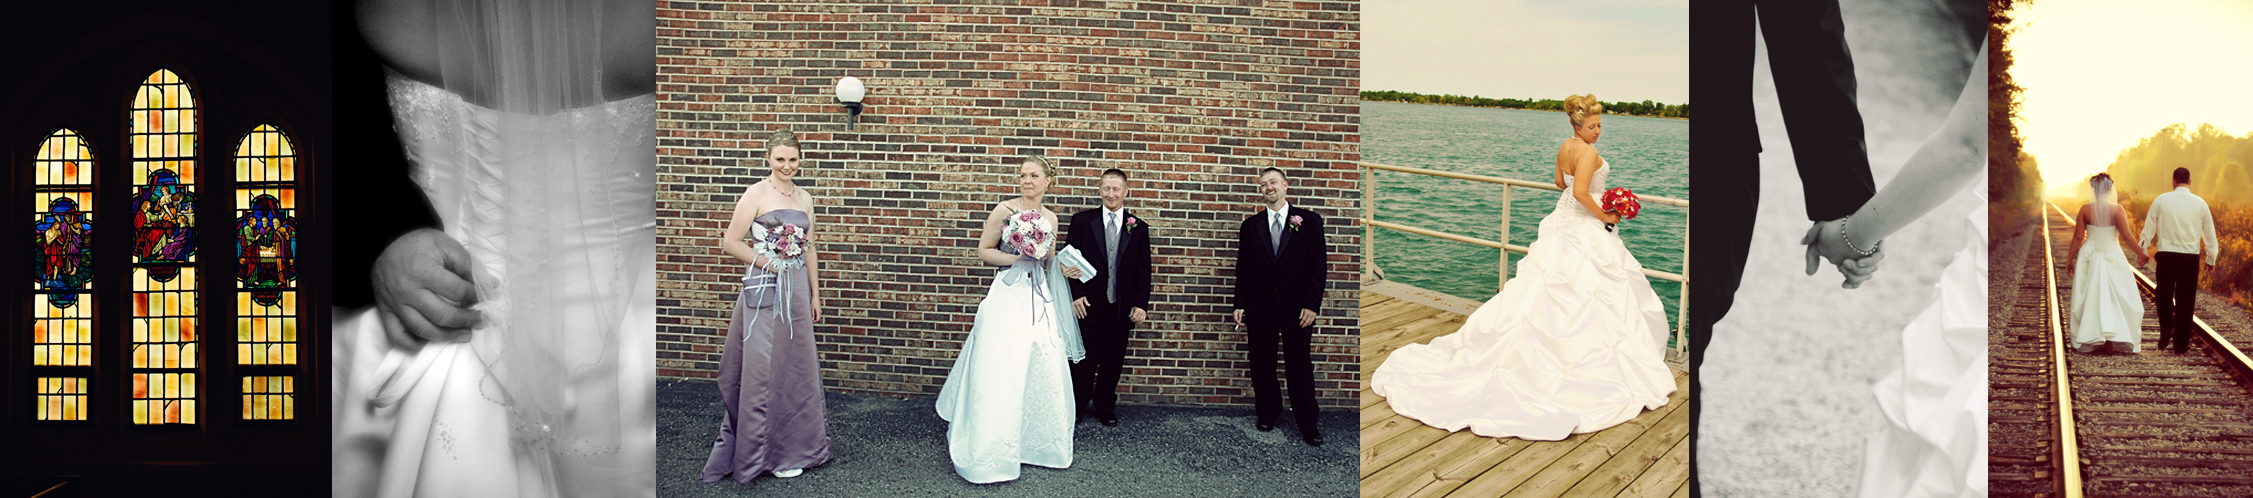 michigan wedding photographer how to find the right wedding photographer